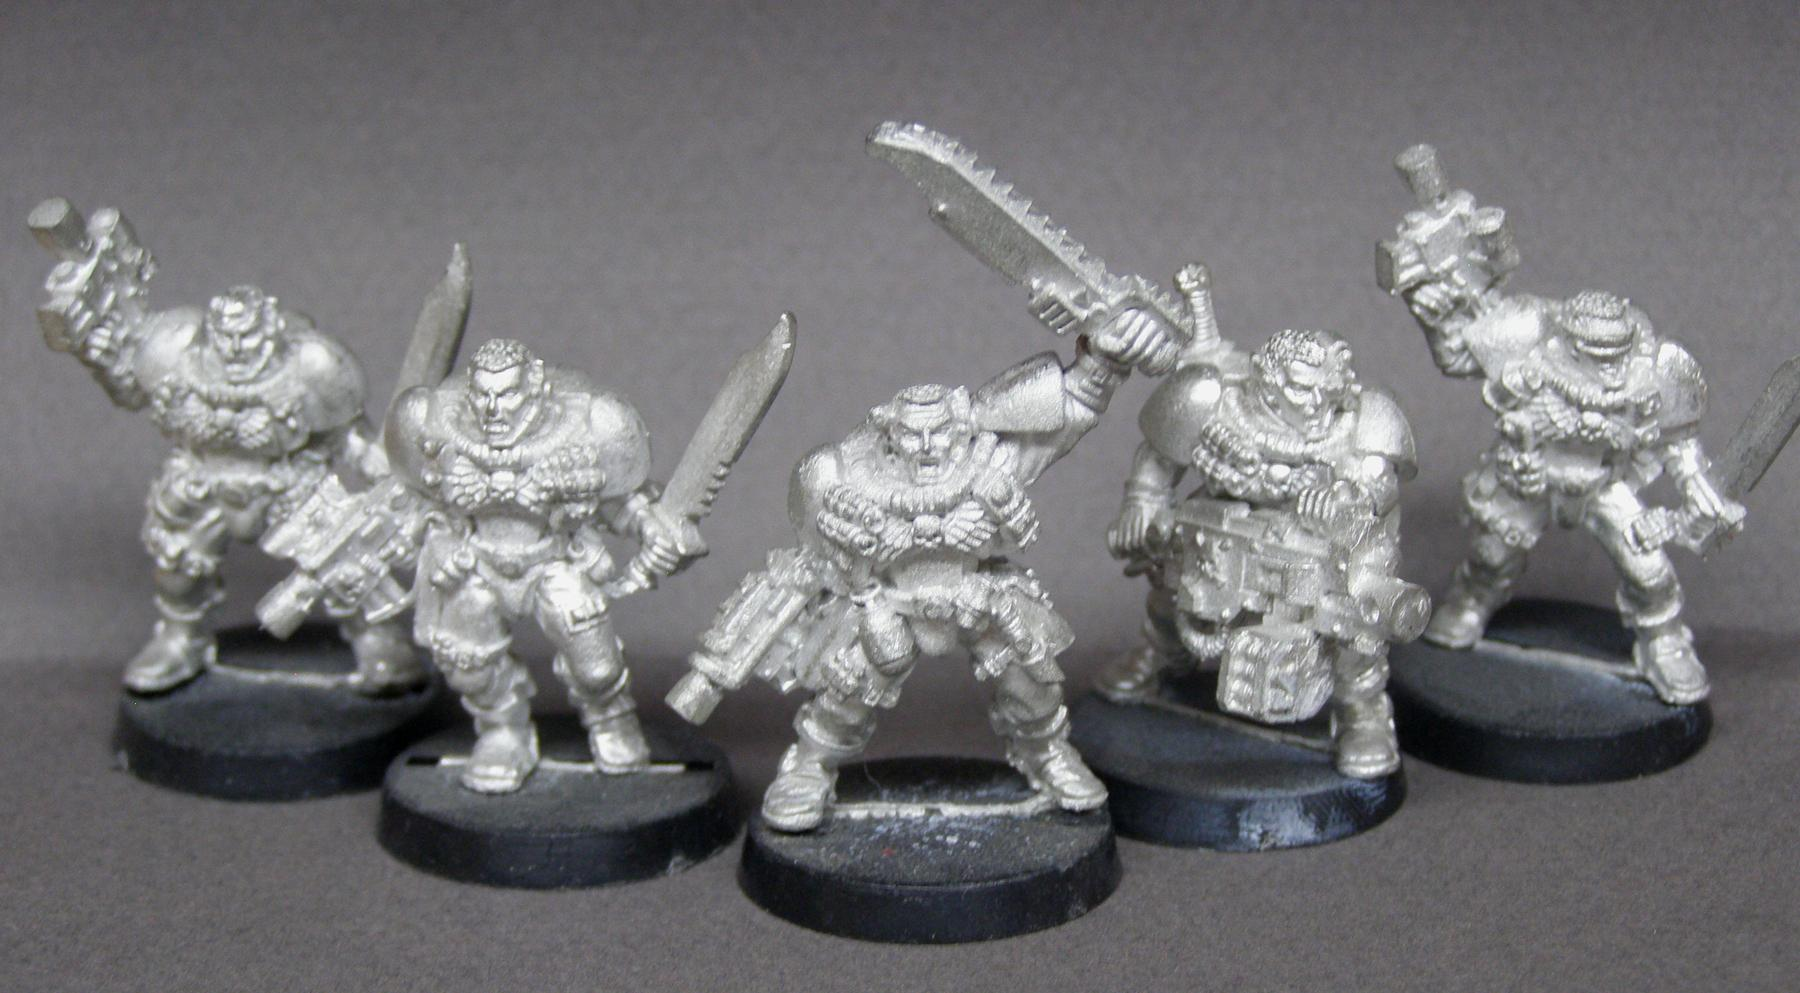 Heavy Bolter, Scouts, Space Marines, Warhammer 40,000